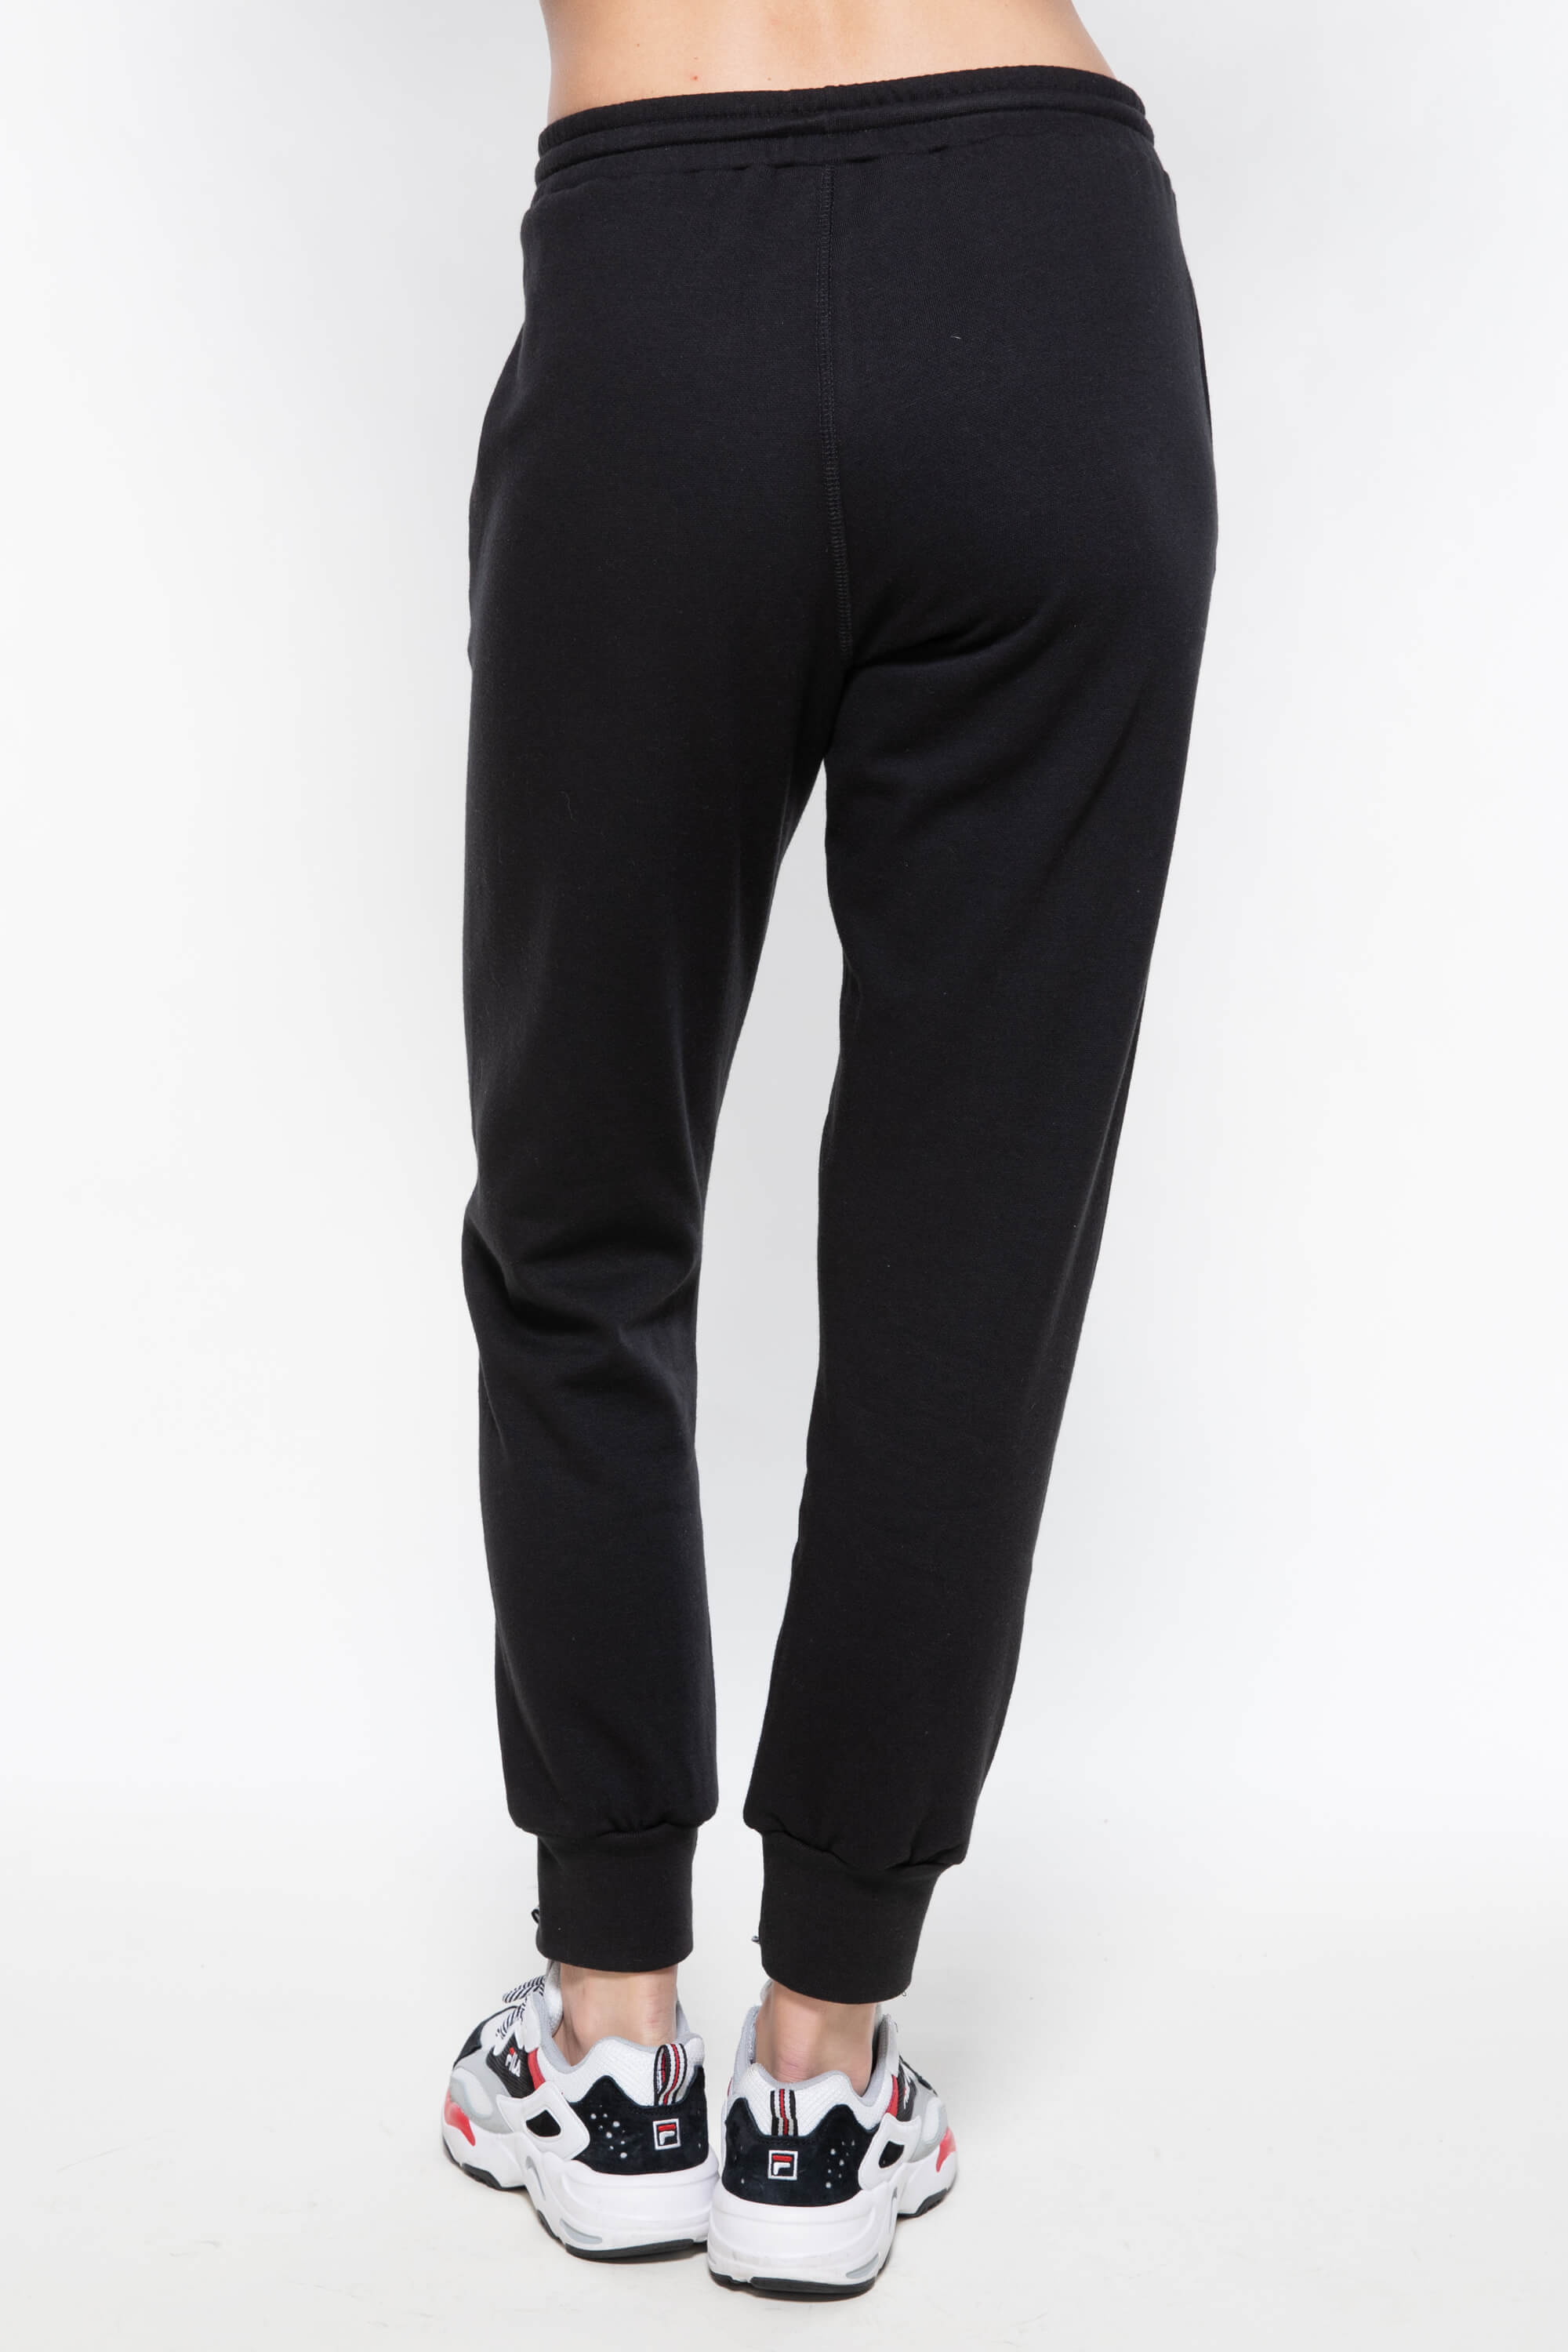 CAMBRIDGE SWEATS - BLACK